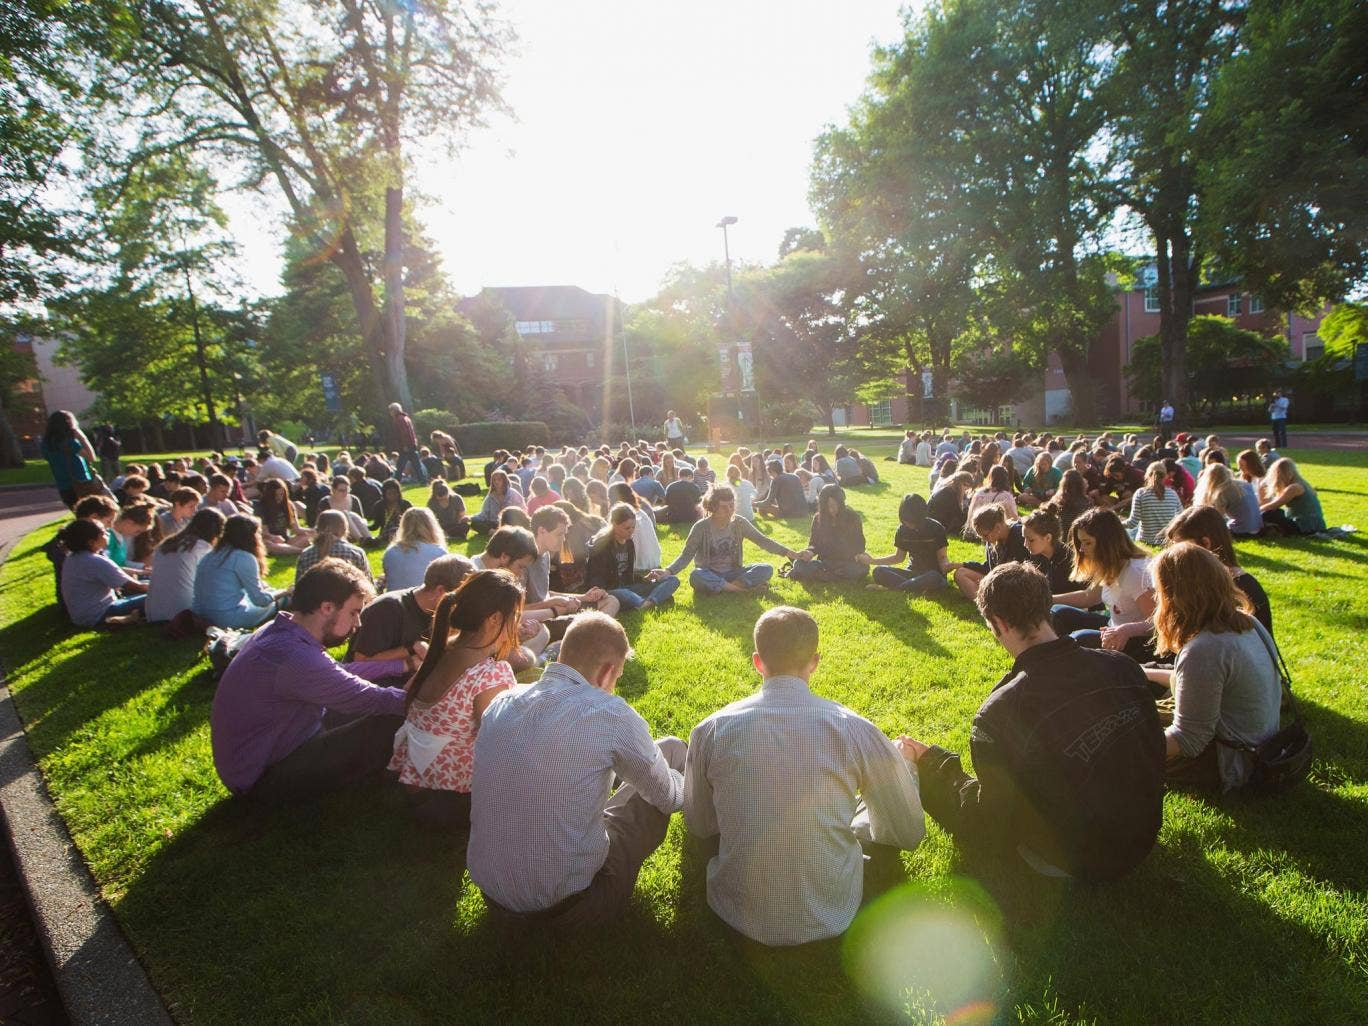 Students link hands and pray on the campus lawns of Seattle Pacific University, where Thursday's fatal shooting took place